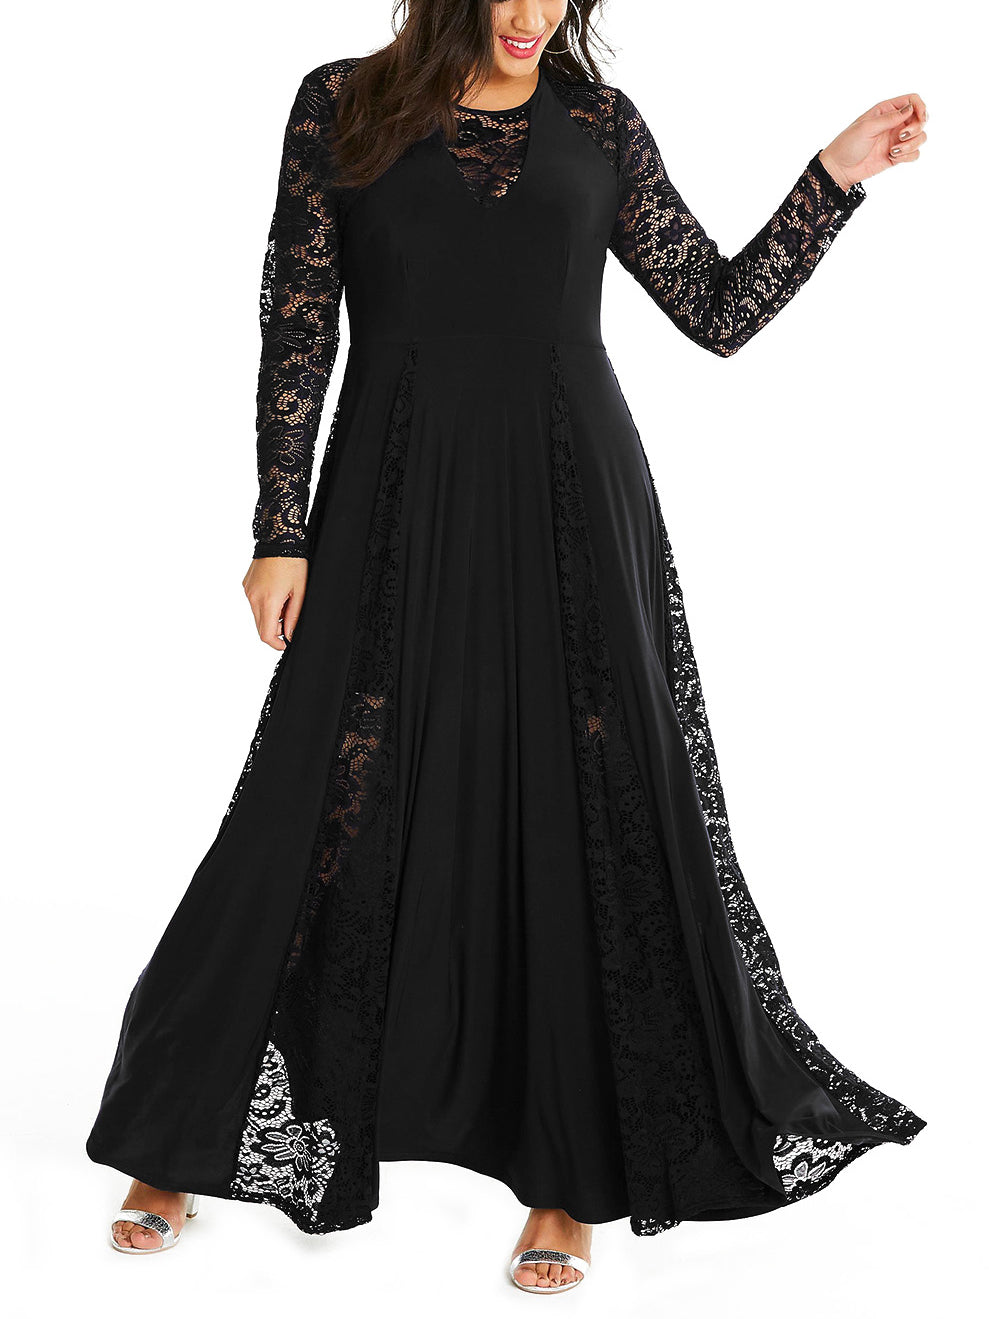 Catalina Plus Size Lace Embroidered Maxi Dress